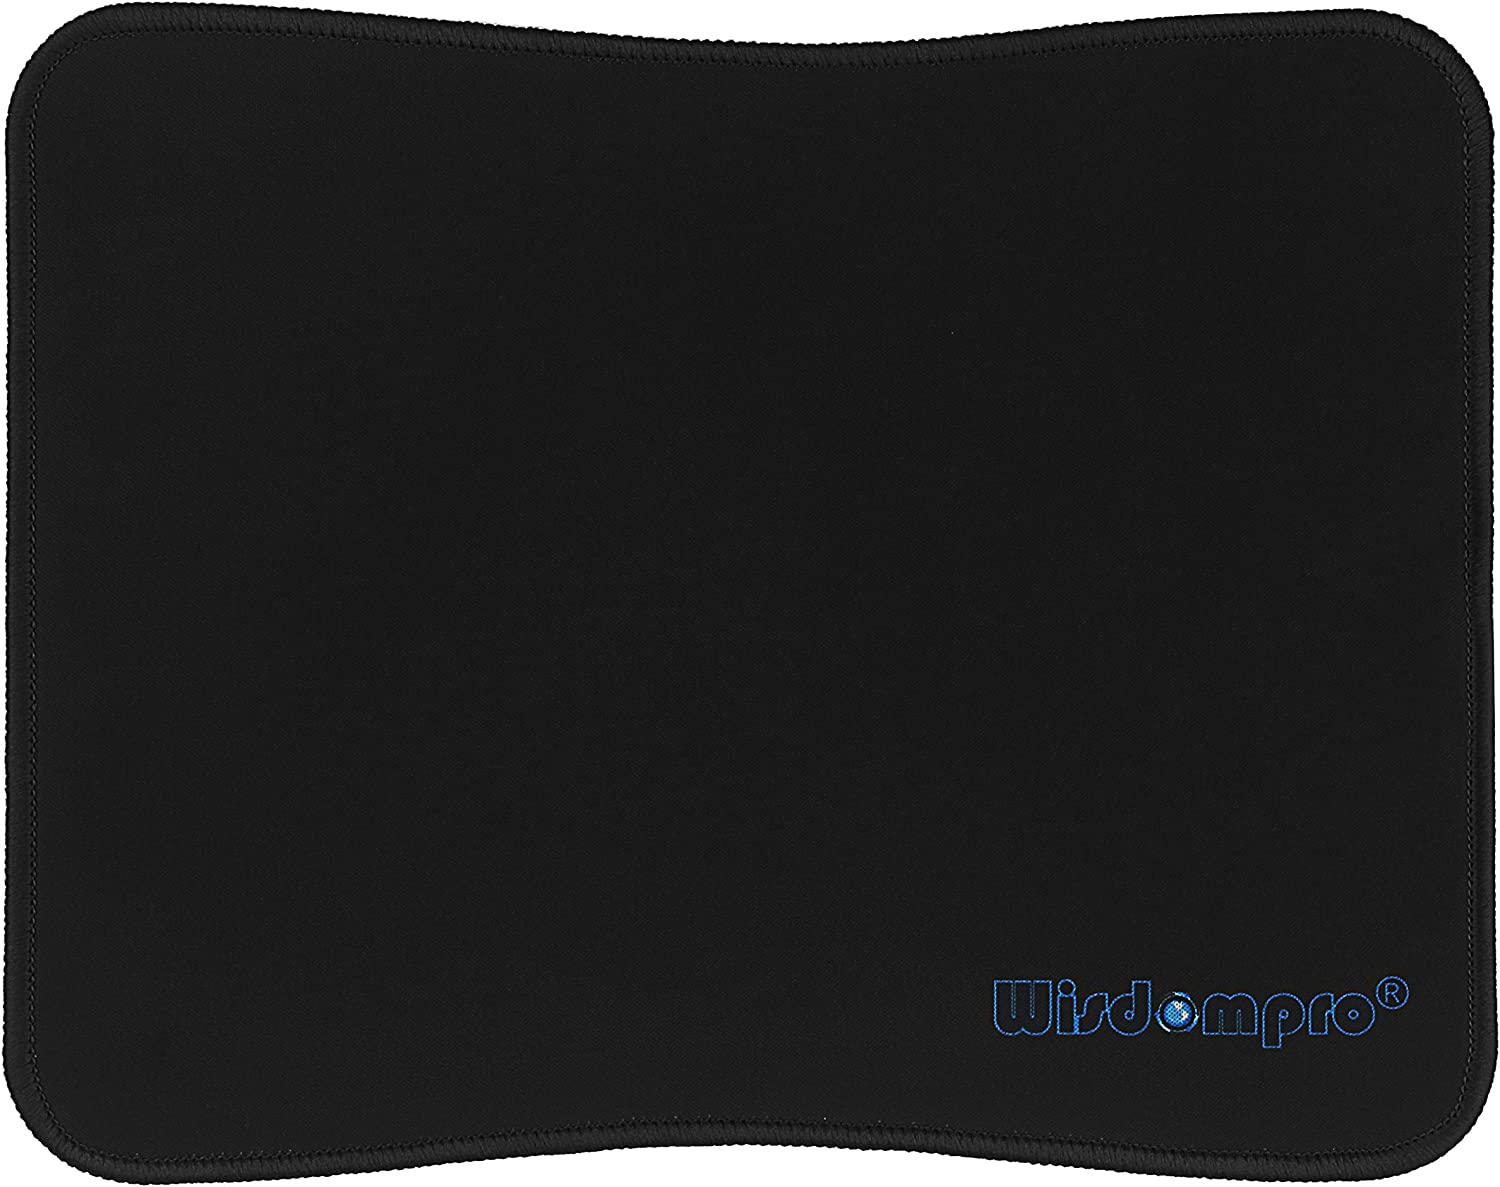 Wisdompro Mouse Pad Mouse Mat with Black Stitched Edges, Ultra Thin Non-Slip Rubber Base Mousepad for Laptop, Computer & PC, 8.2 x 10.2 Inches (20.8X 25.8cm) - 1 Pack Black Edge